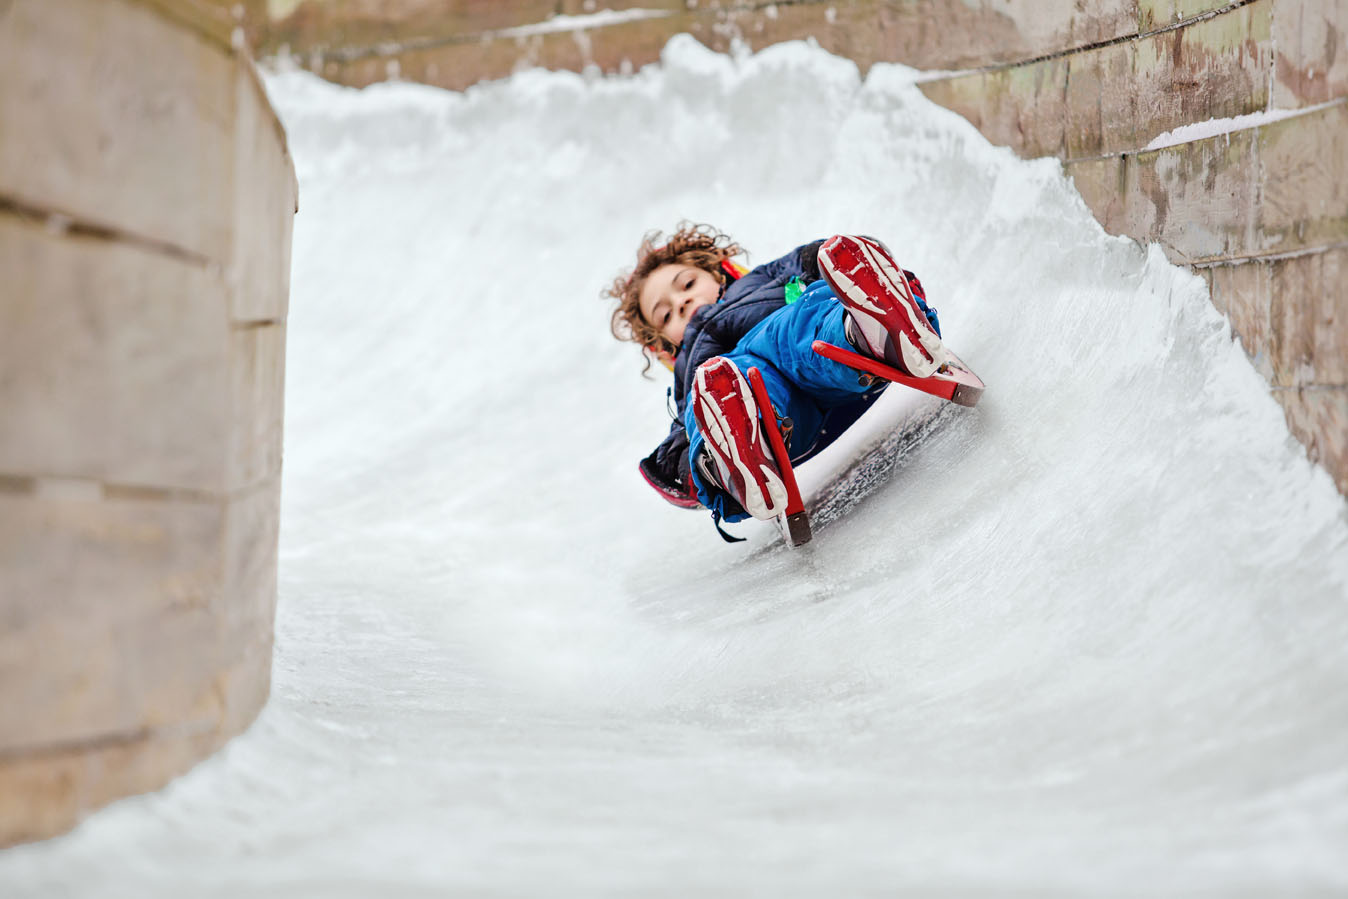 Luge Sledding in Muskegon, Michigan.